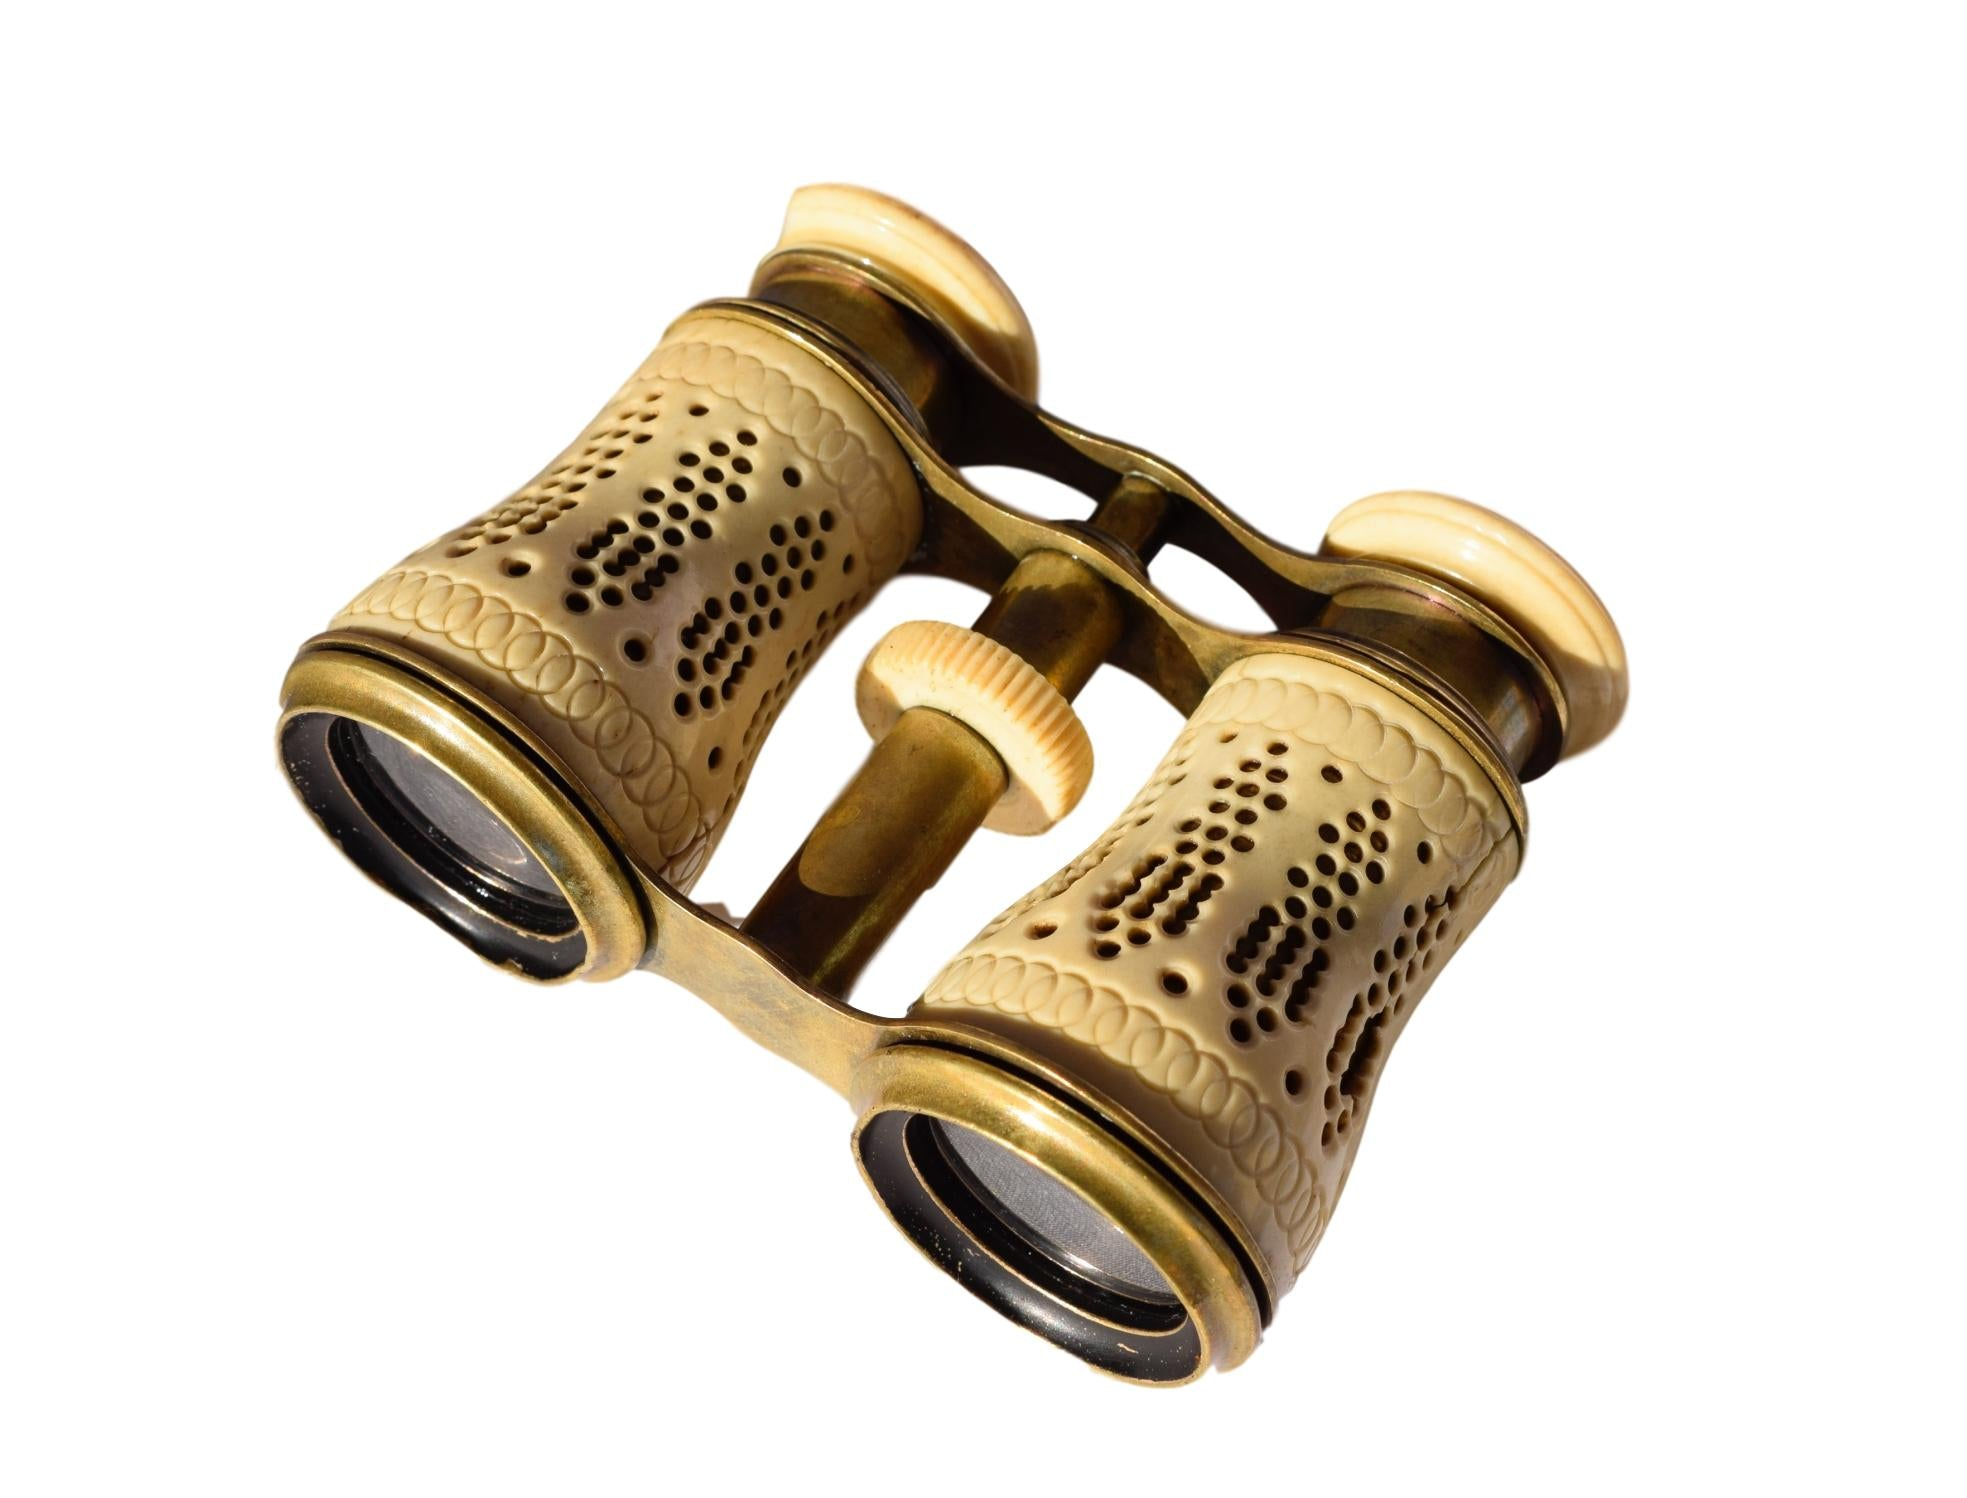 French Antique Carved Opera Glasses - Old Theatre Theater Pair of Binoculars 19th.C - Boudoir Parisian Style